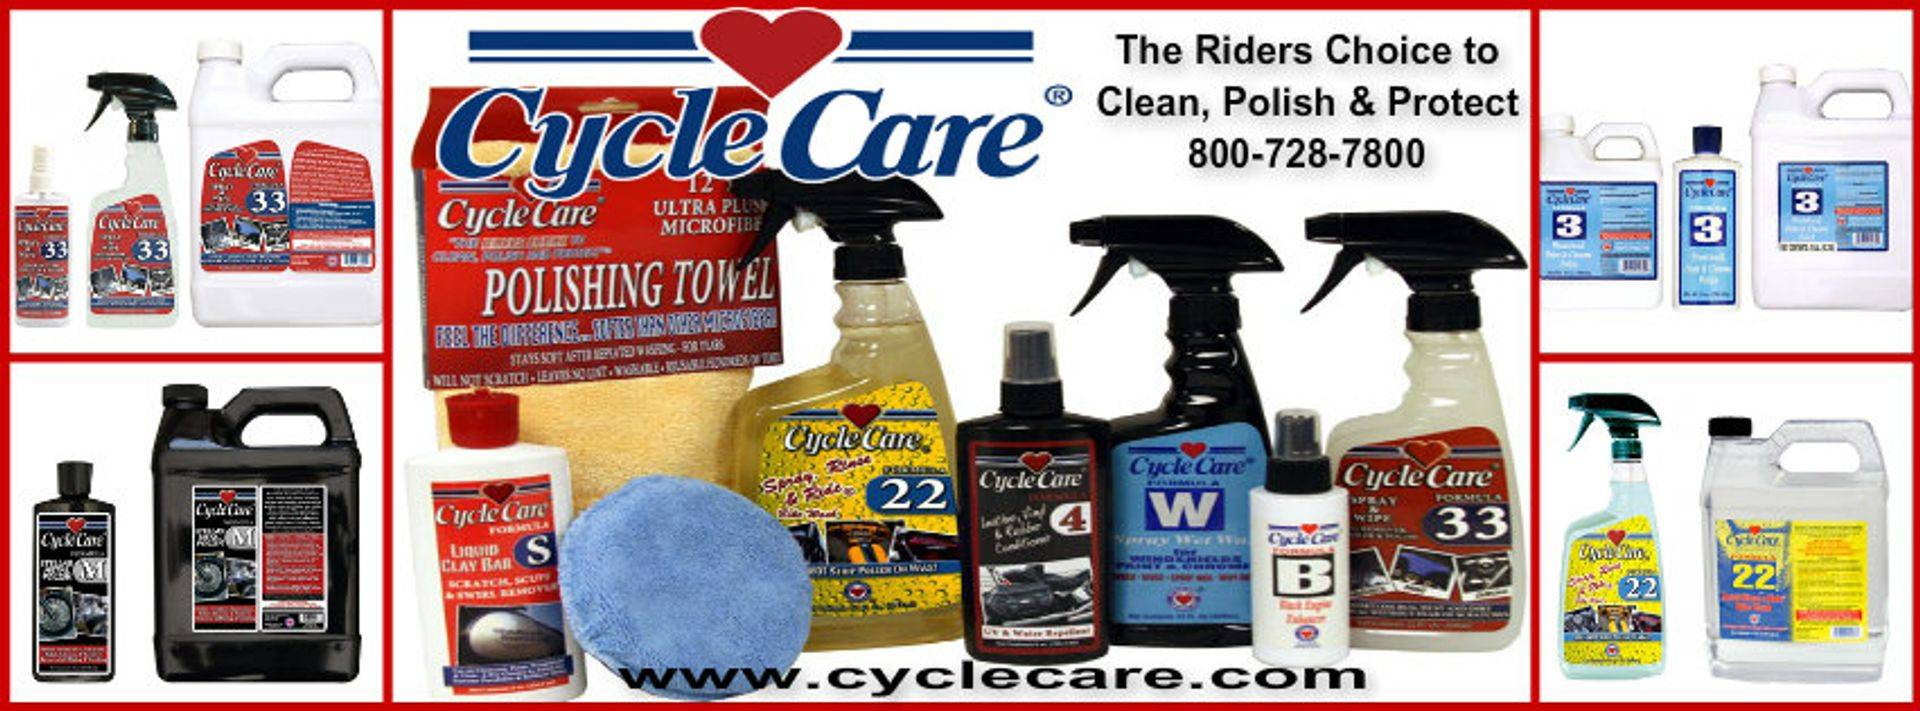 cyclecare.com Motorcycle cleaning products